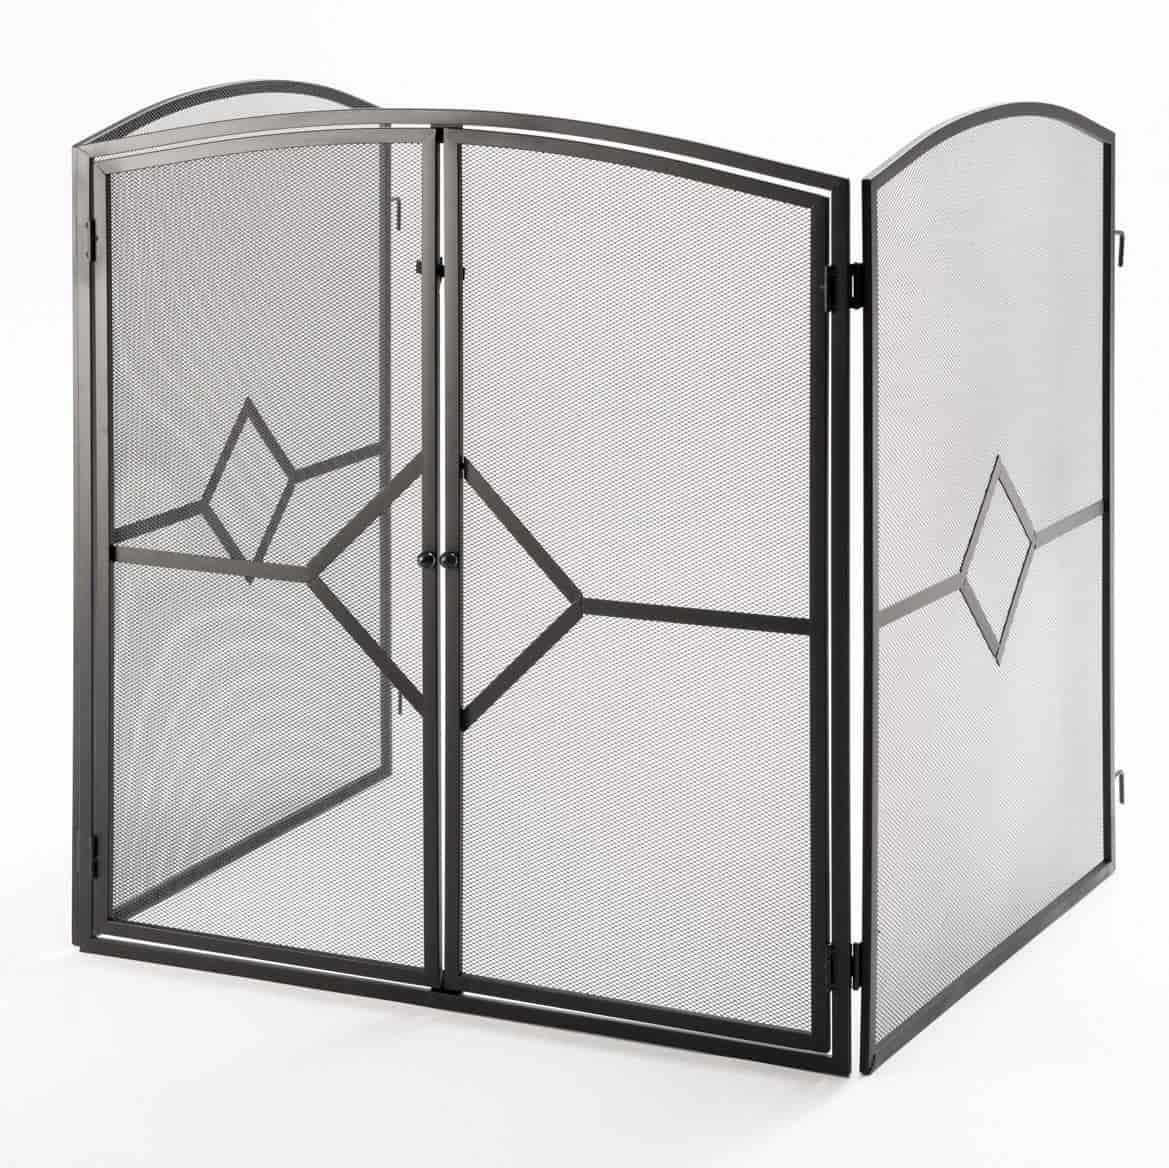 Fire screen guard accessories